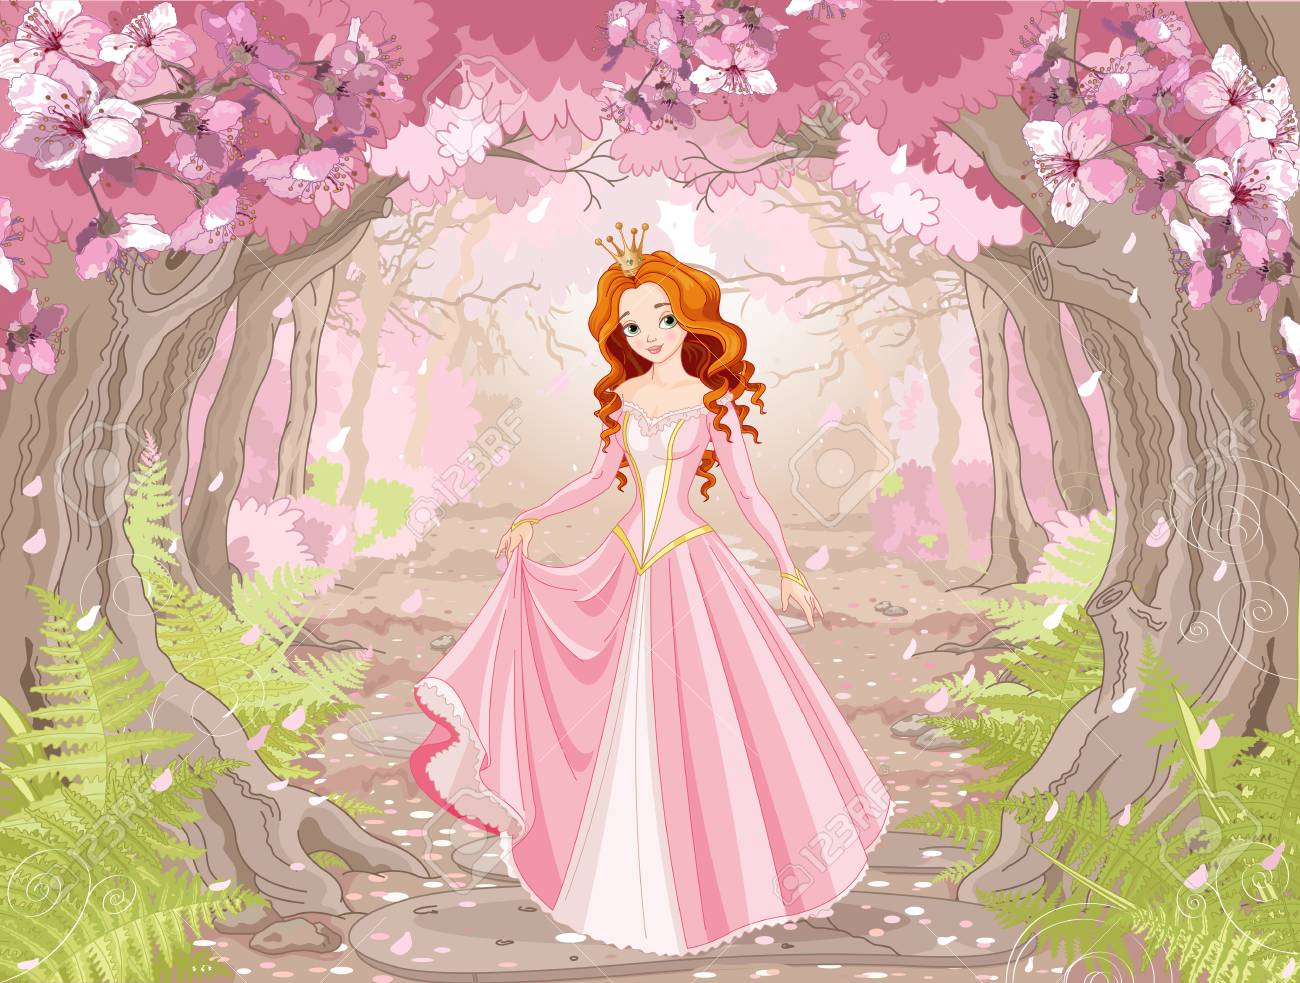 Illustration of beautiful red haired princess on spring forest background - 97042469